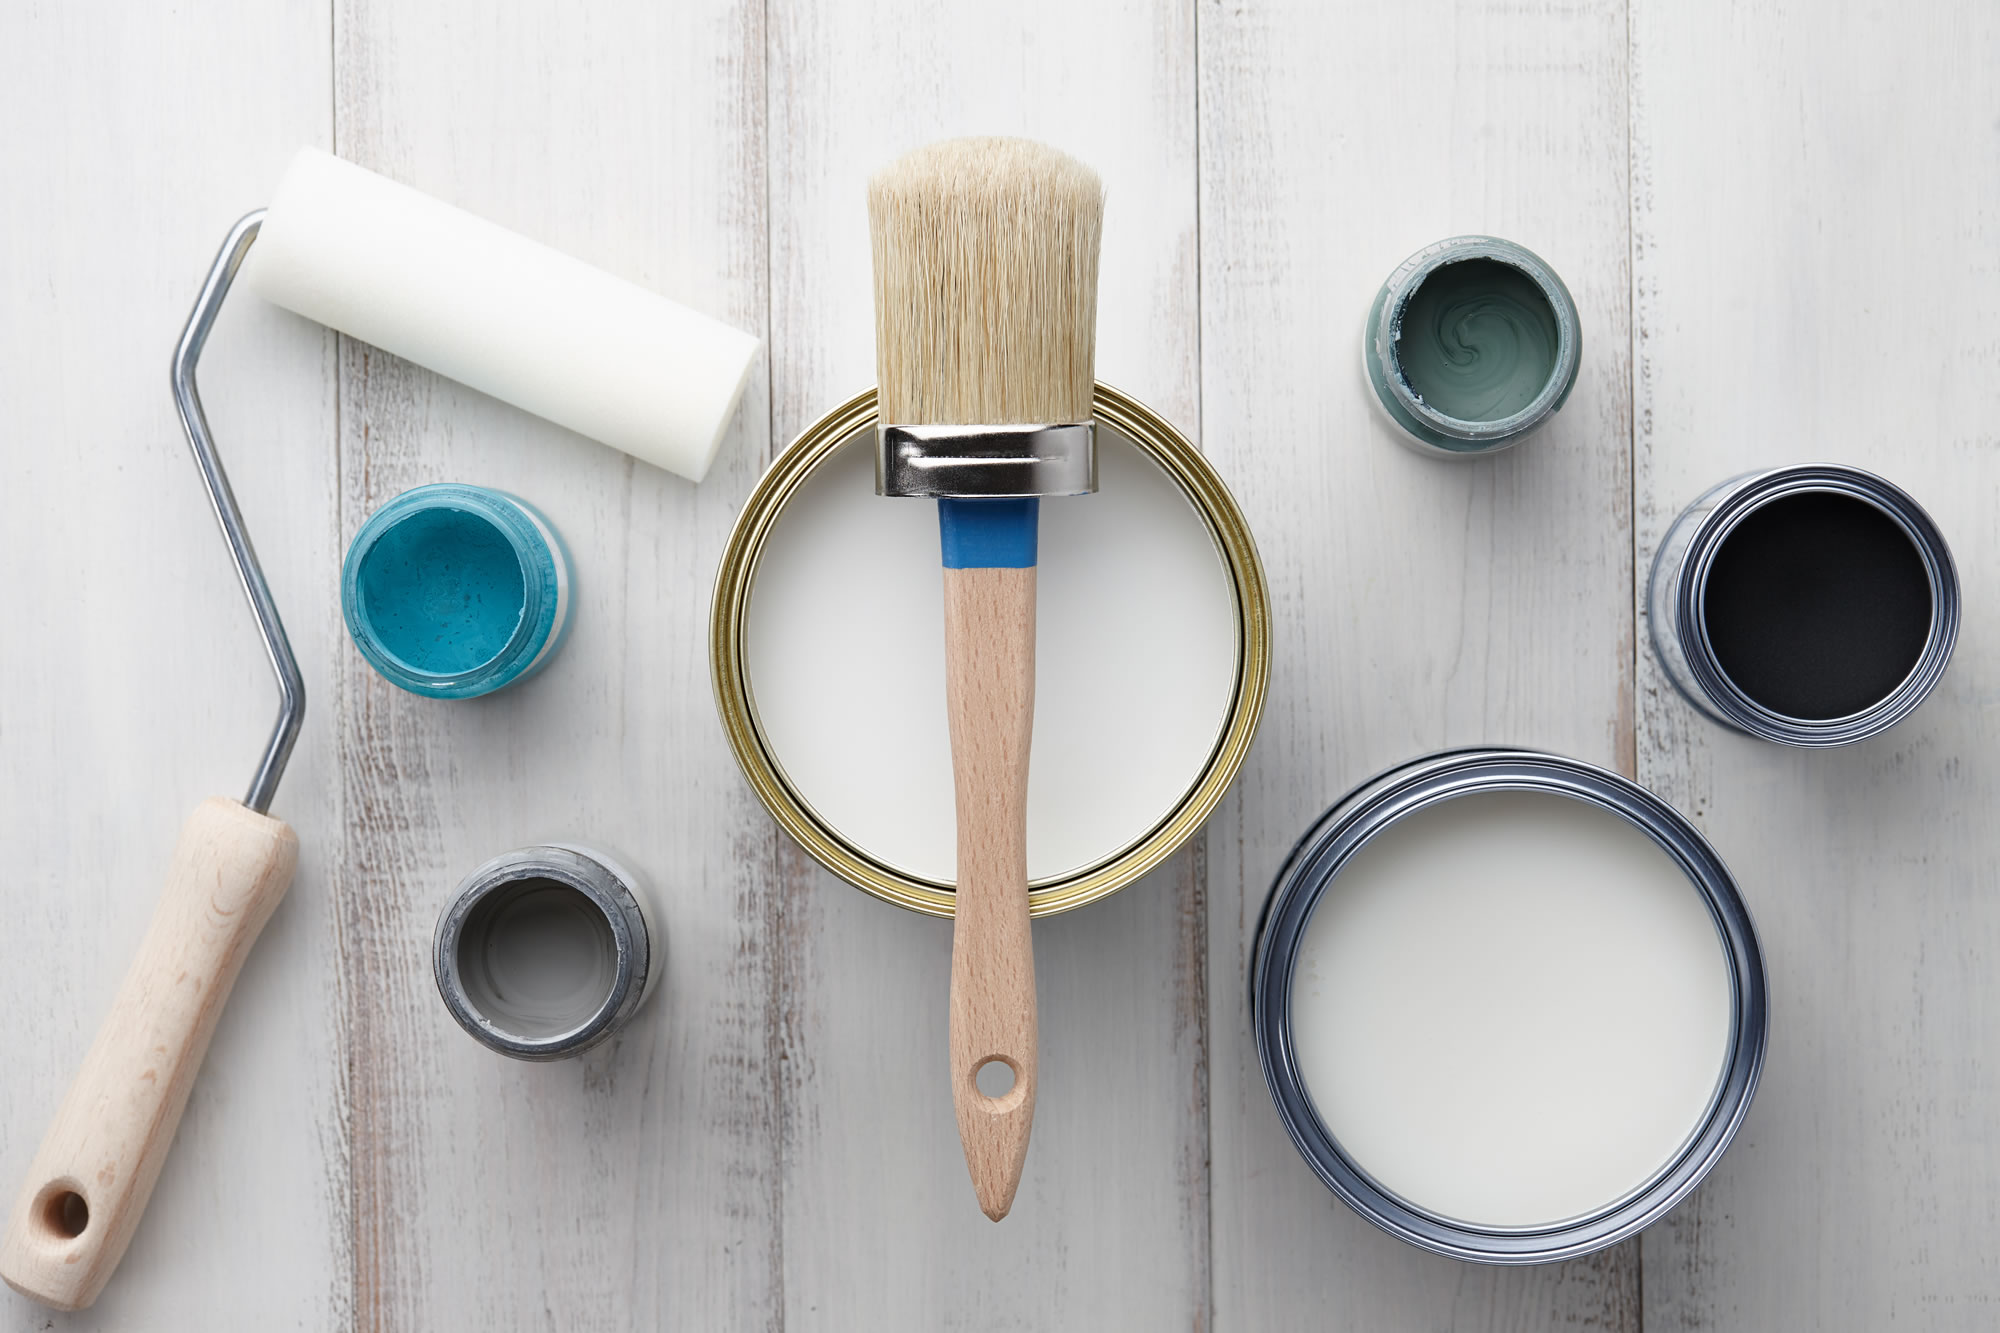 6 Best Wholesale Paint Suppliers in the USA